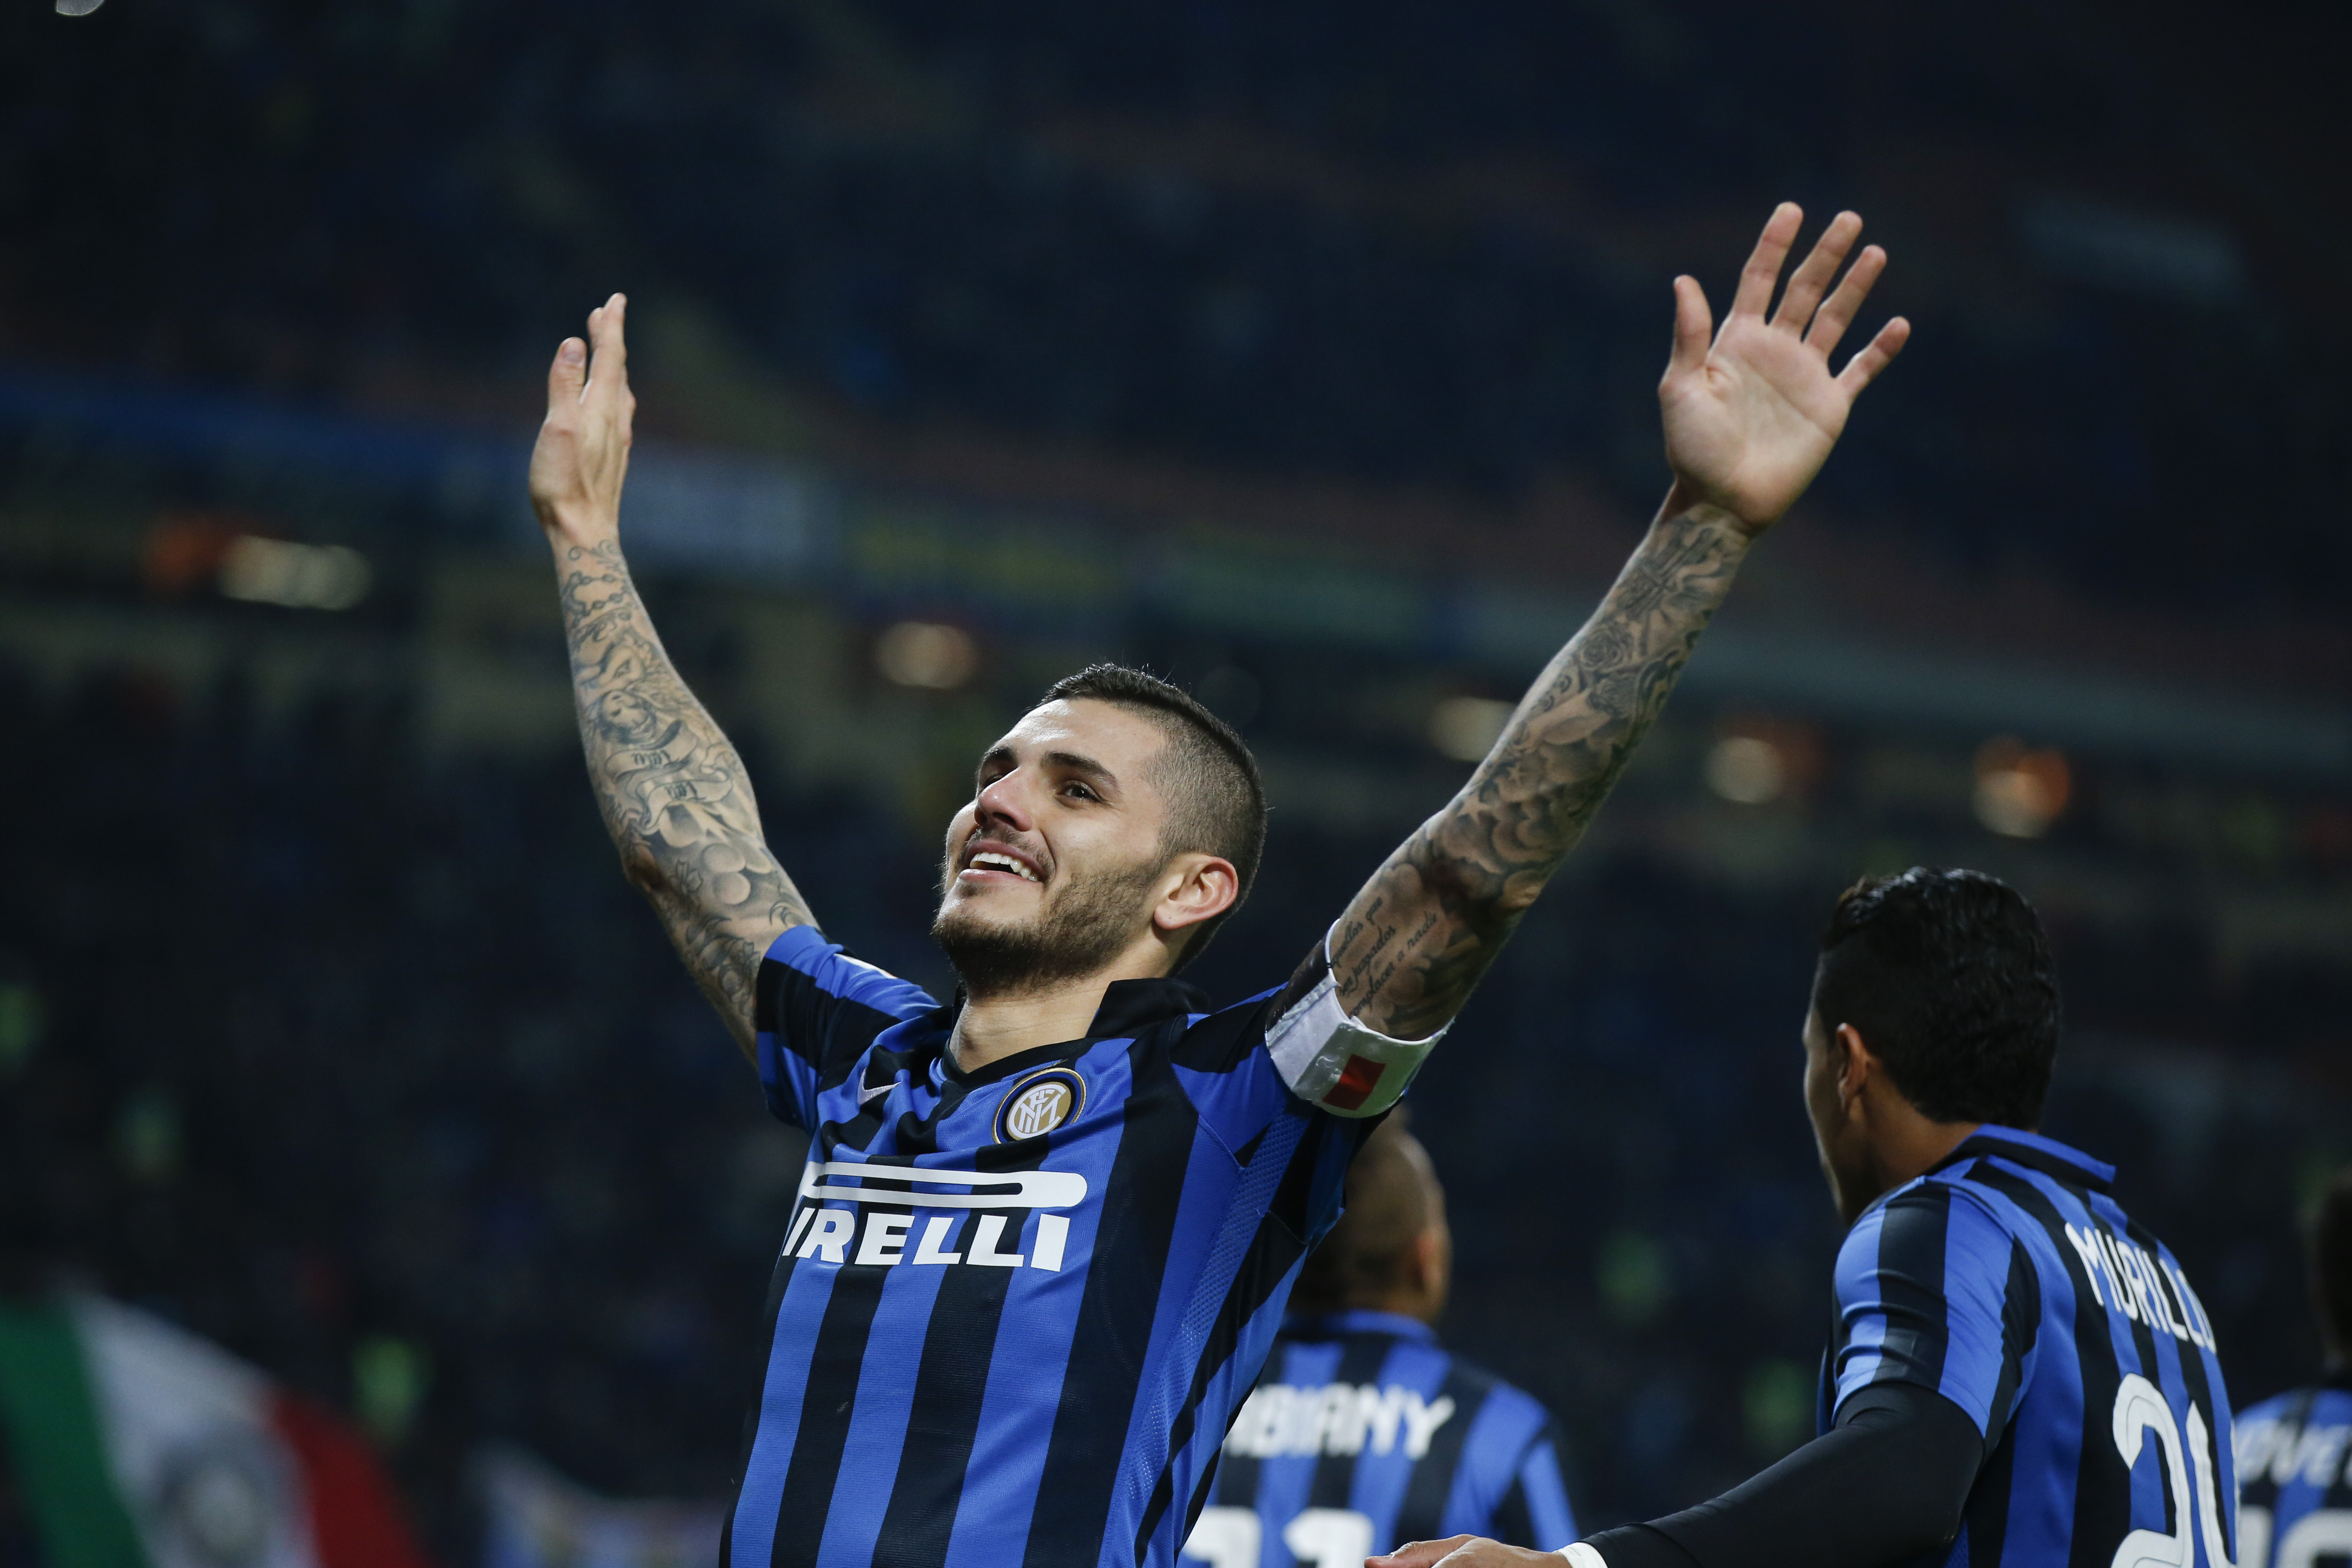 Icardi is one of the best strikers in the world. Image: PA Images